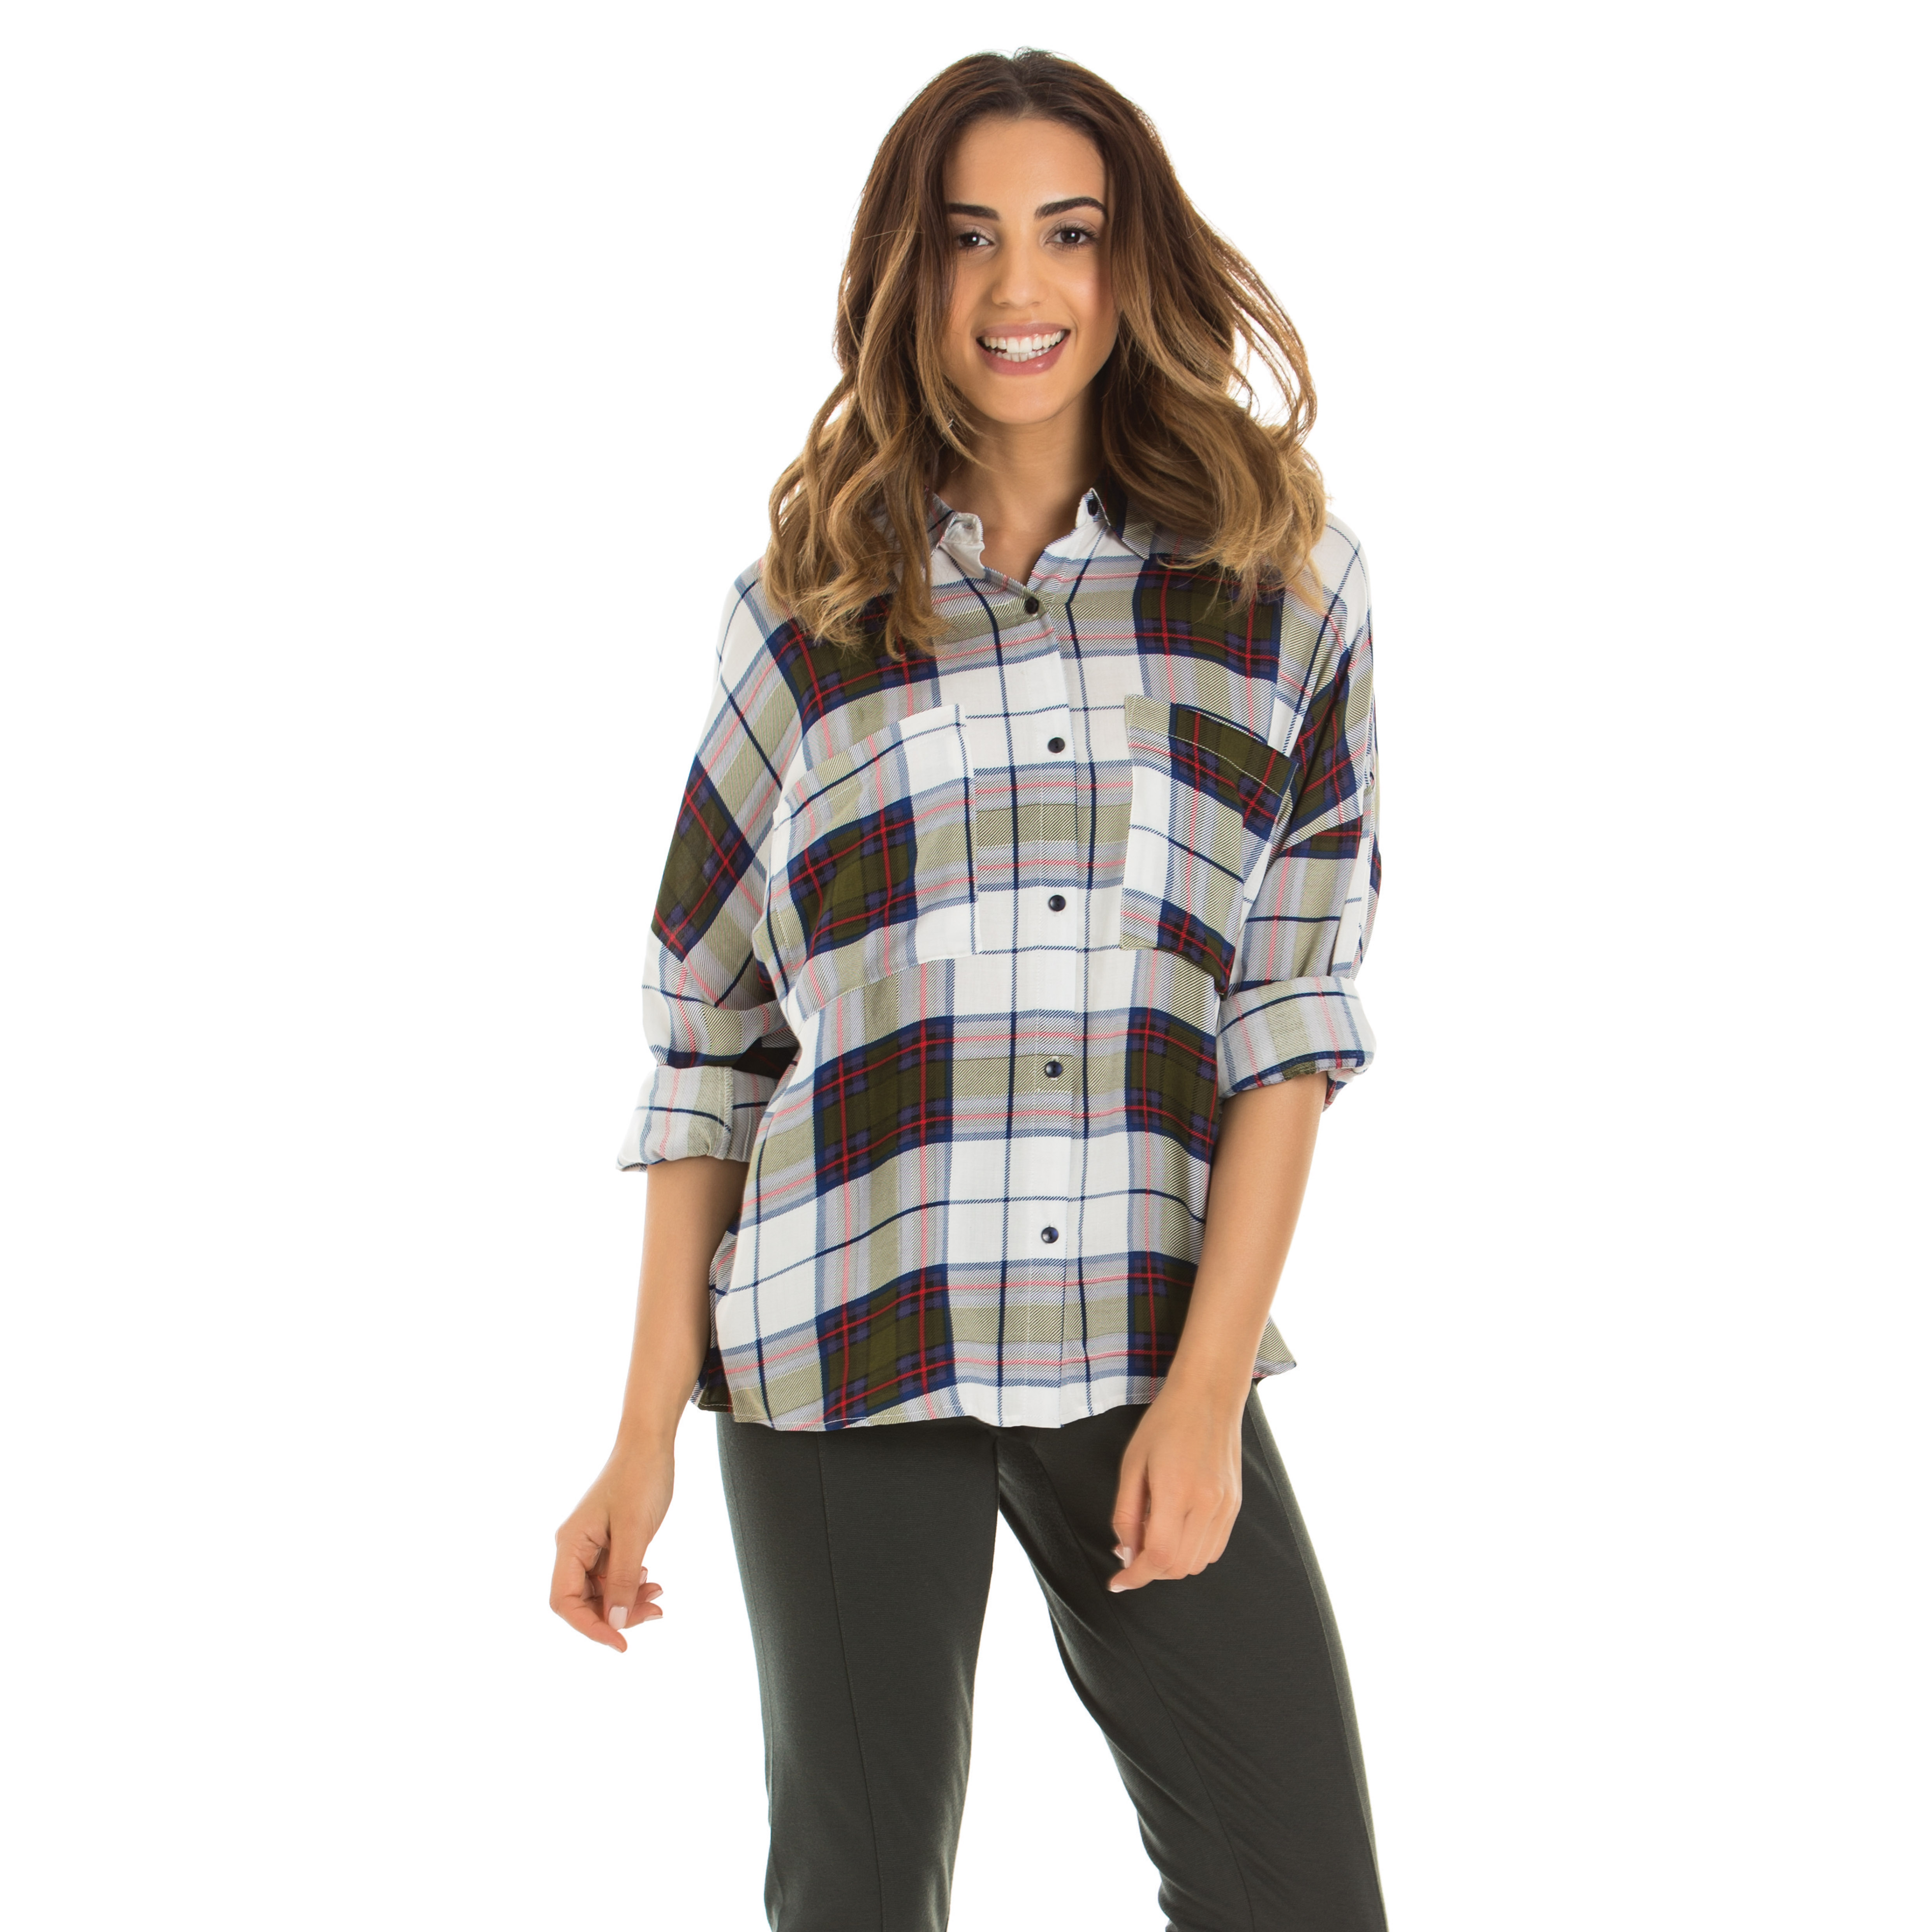 A woman waring a plaid shirt